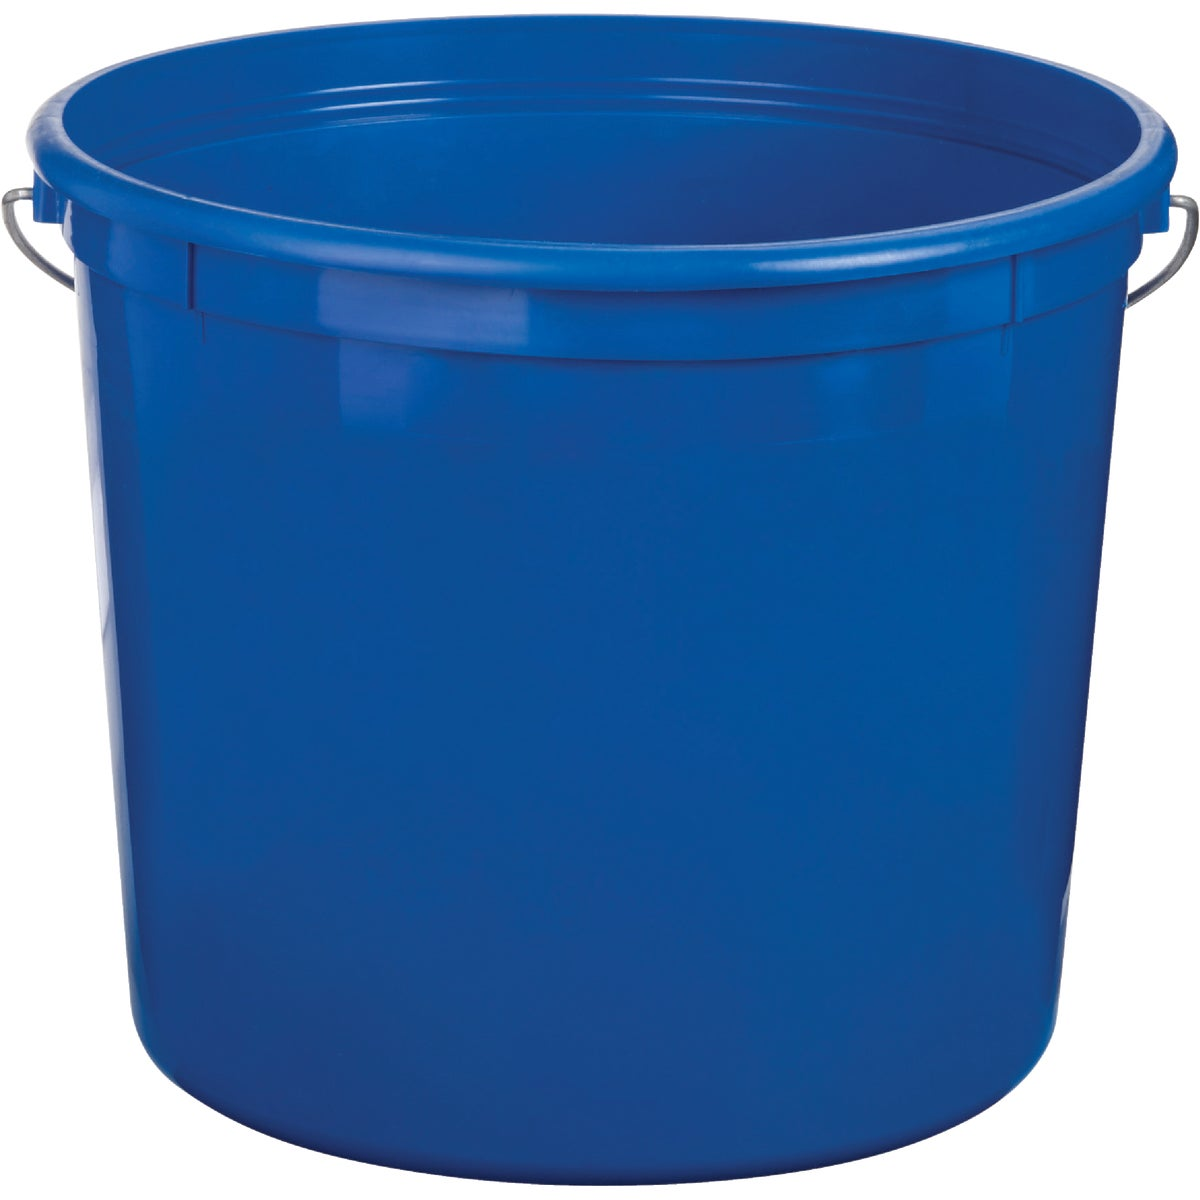 5QT BLU PLSTC PAINT PAIL - 500BLUE by Leaktite Corporation